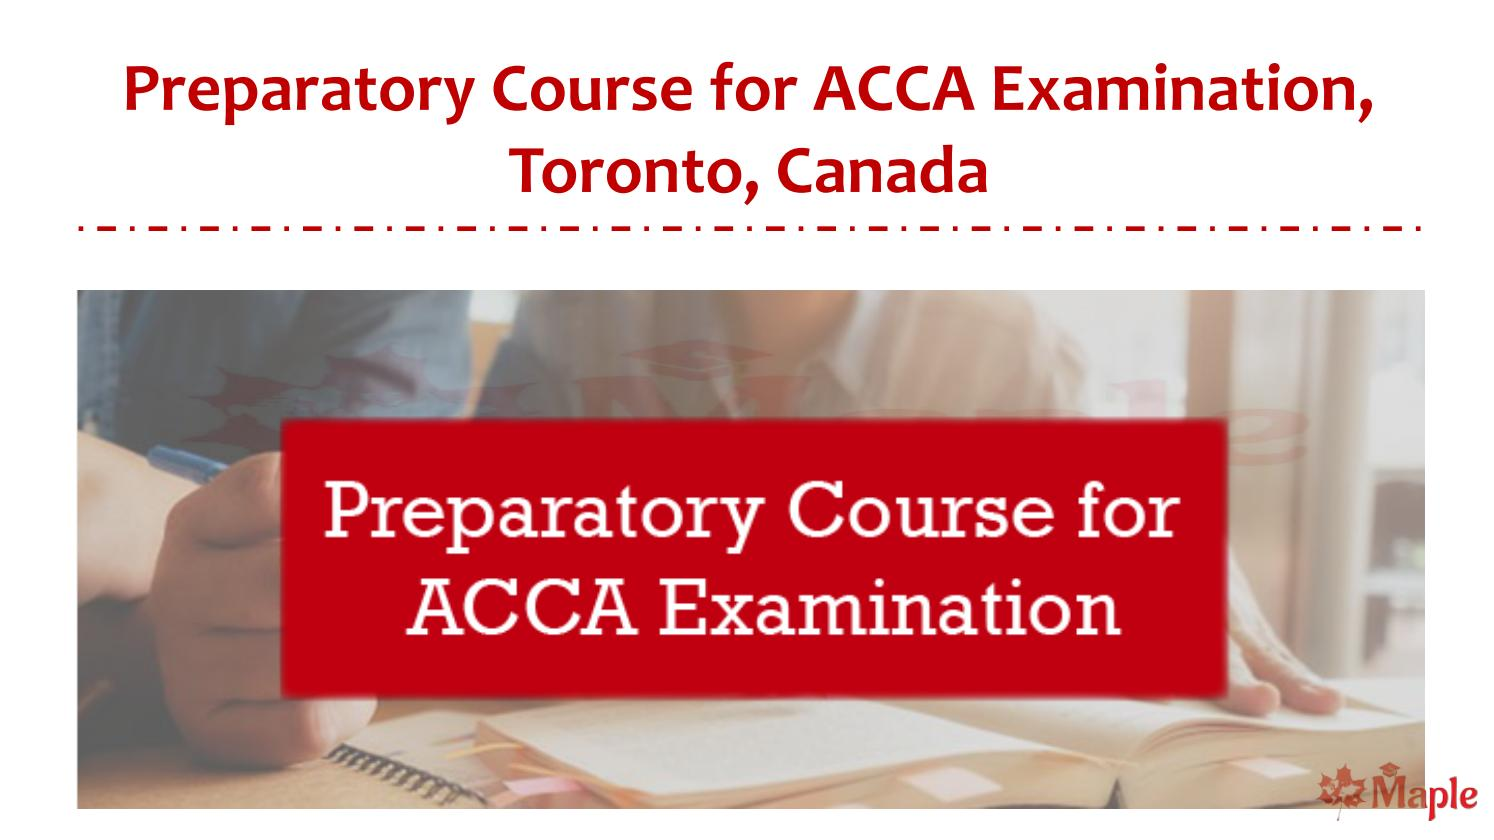 Preparatory Course for ACCA Examination, Toronto, Canada by Maple